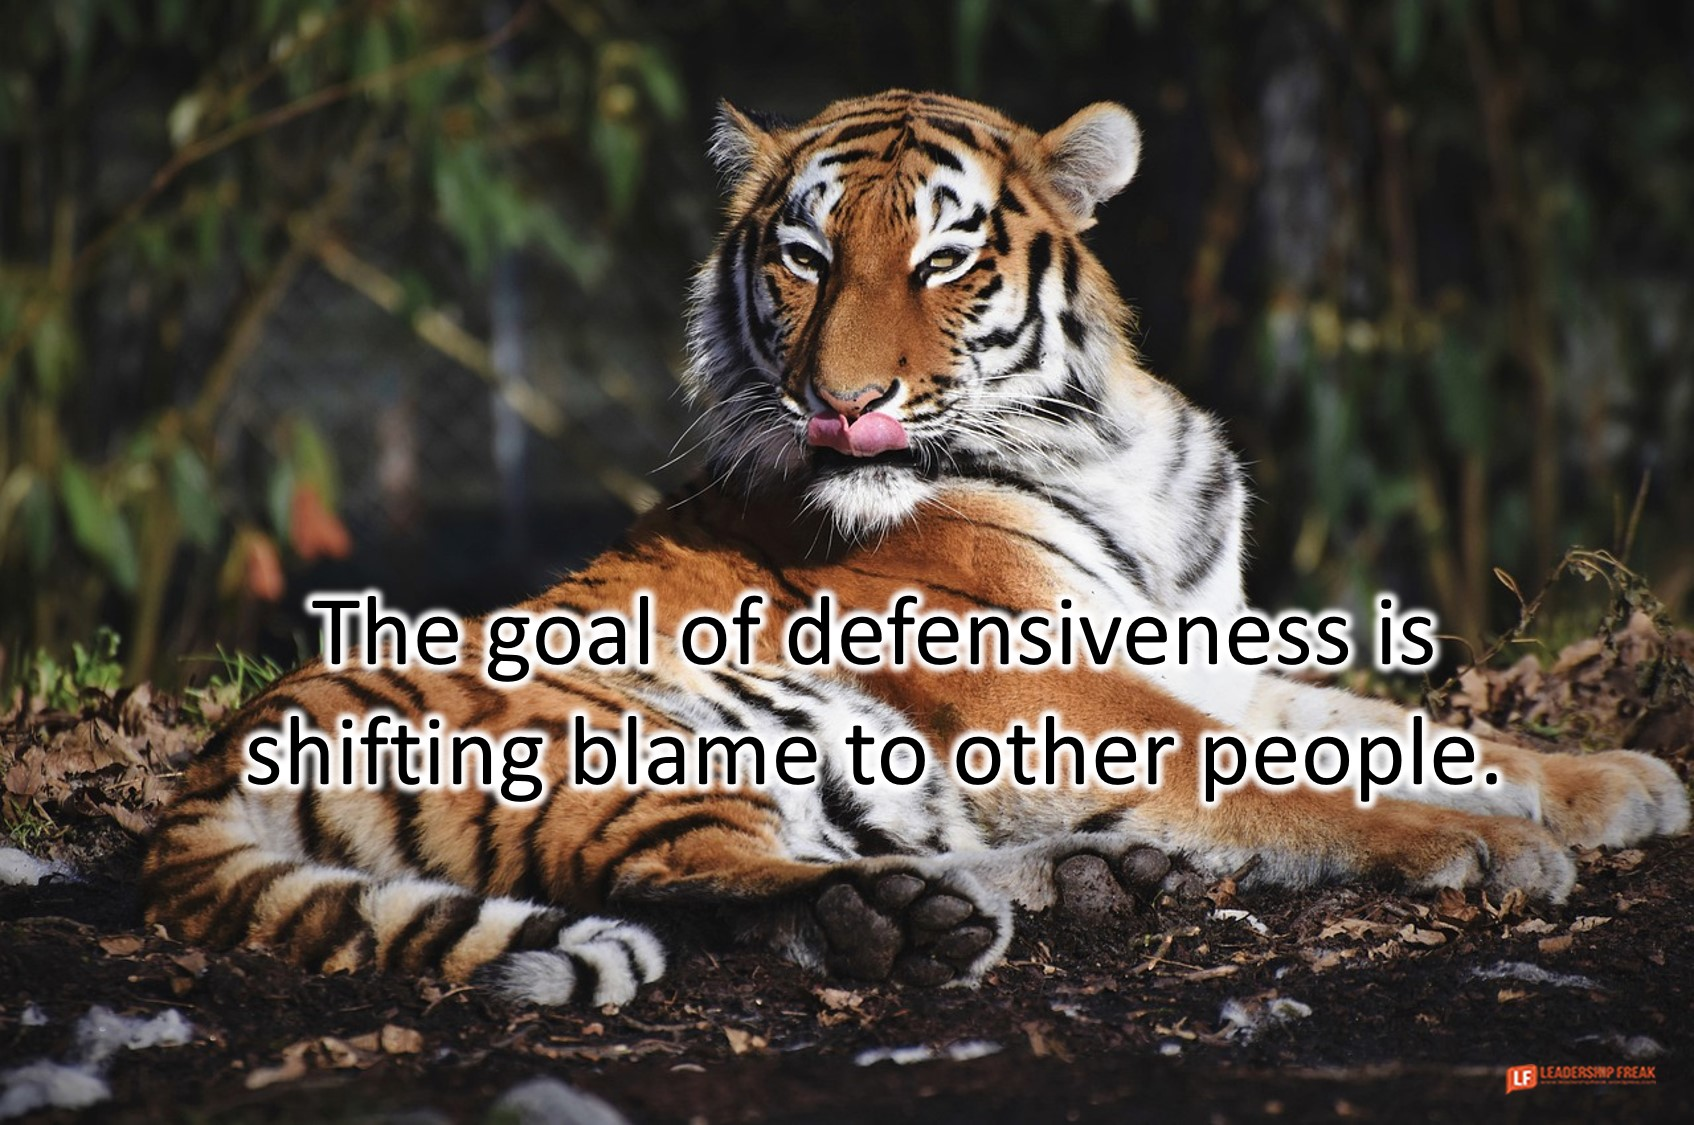 Tiger with its tongue out.  The goal of defensiveness is shifting blame to other people.